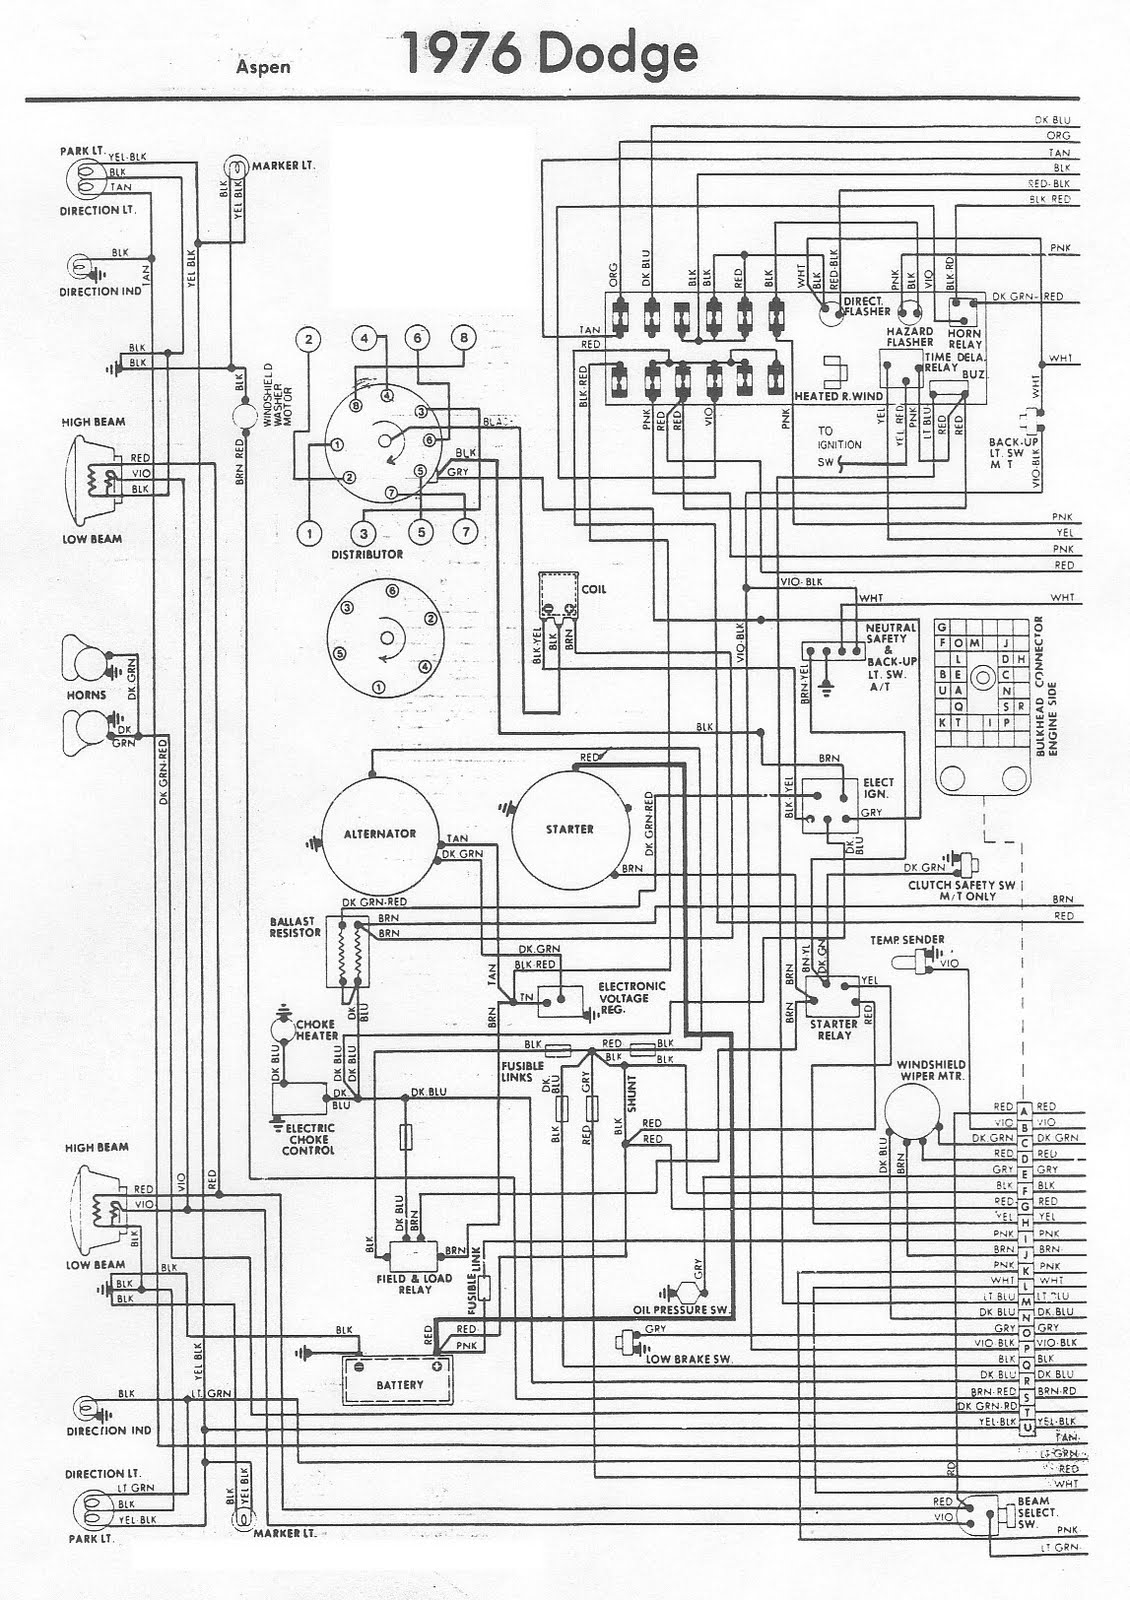 Brilliant Wds Bmw Wiring Diagram System Download Wiring Library Wiring Cloud Mousmenurrecoveryedborg